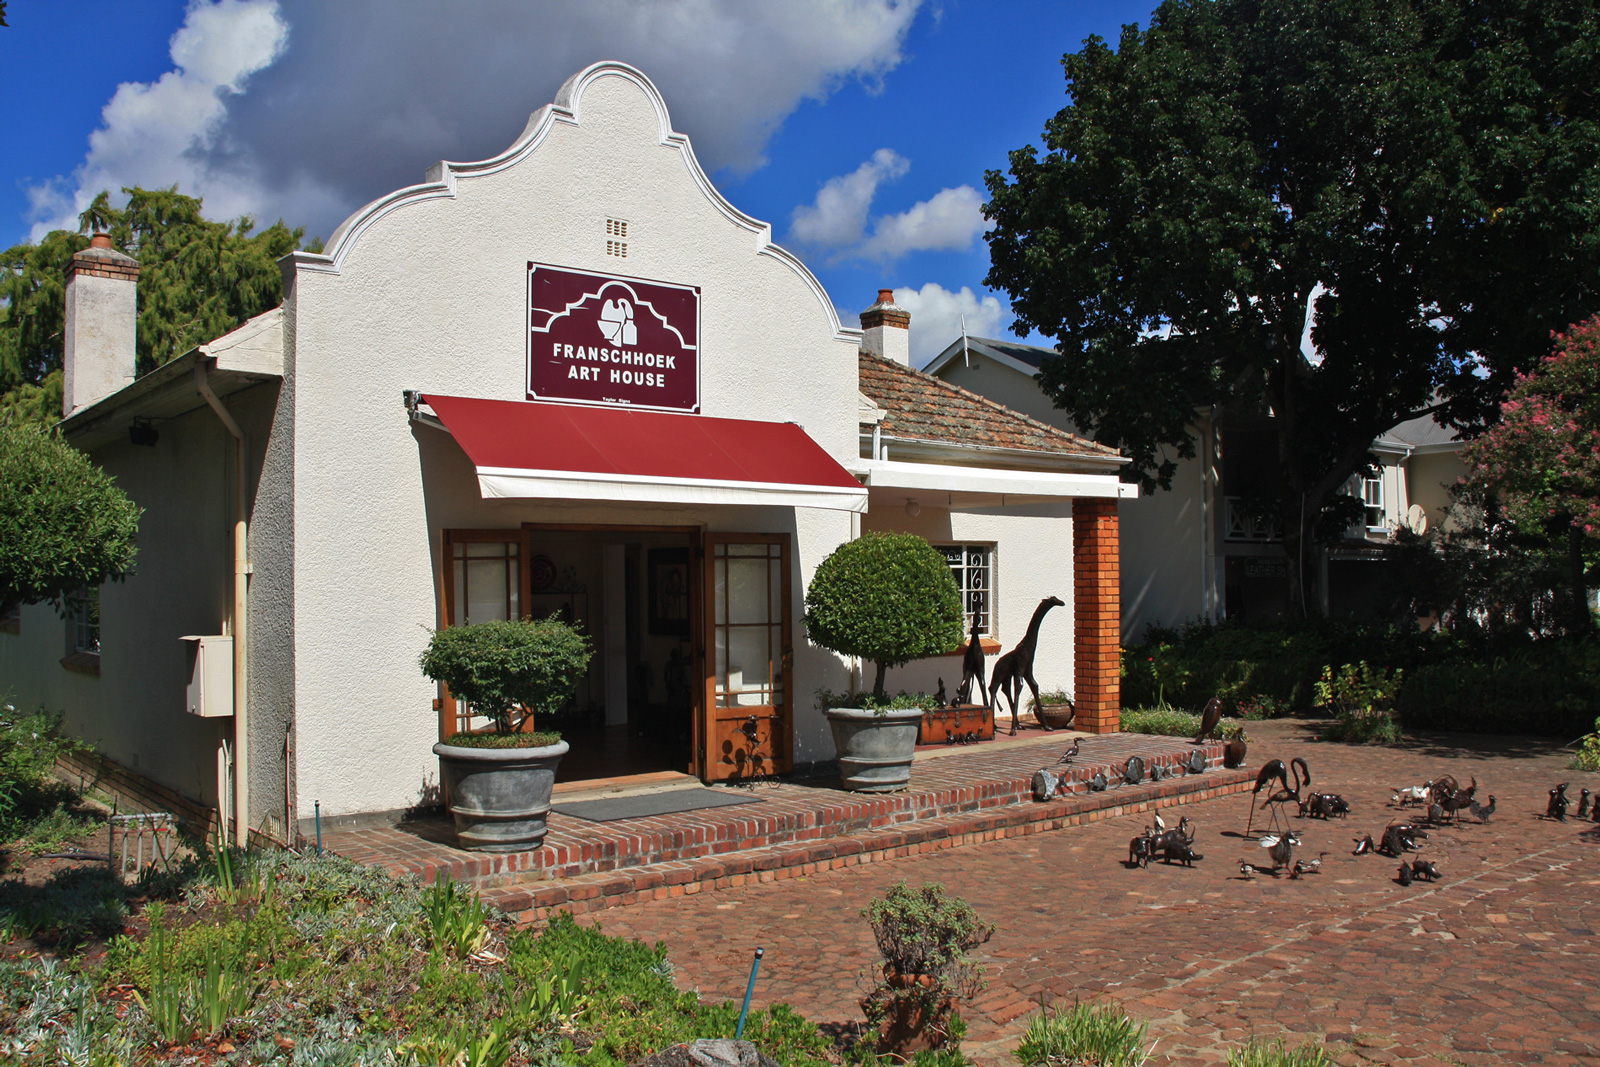 Franschhoek south africa architecture